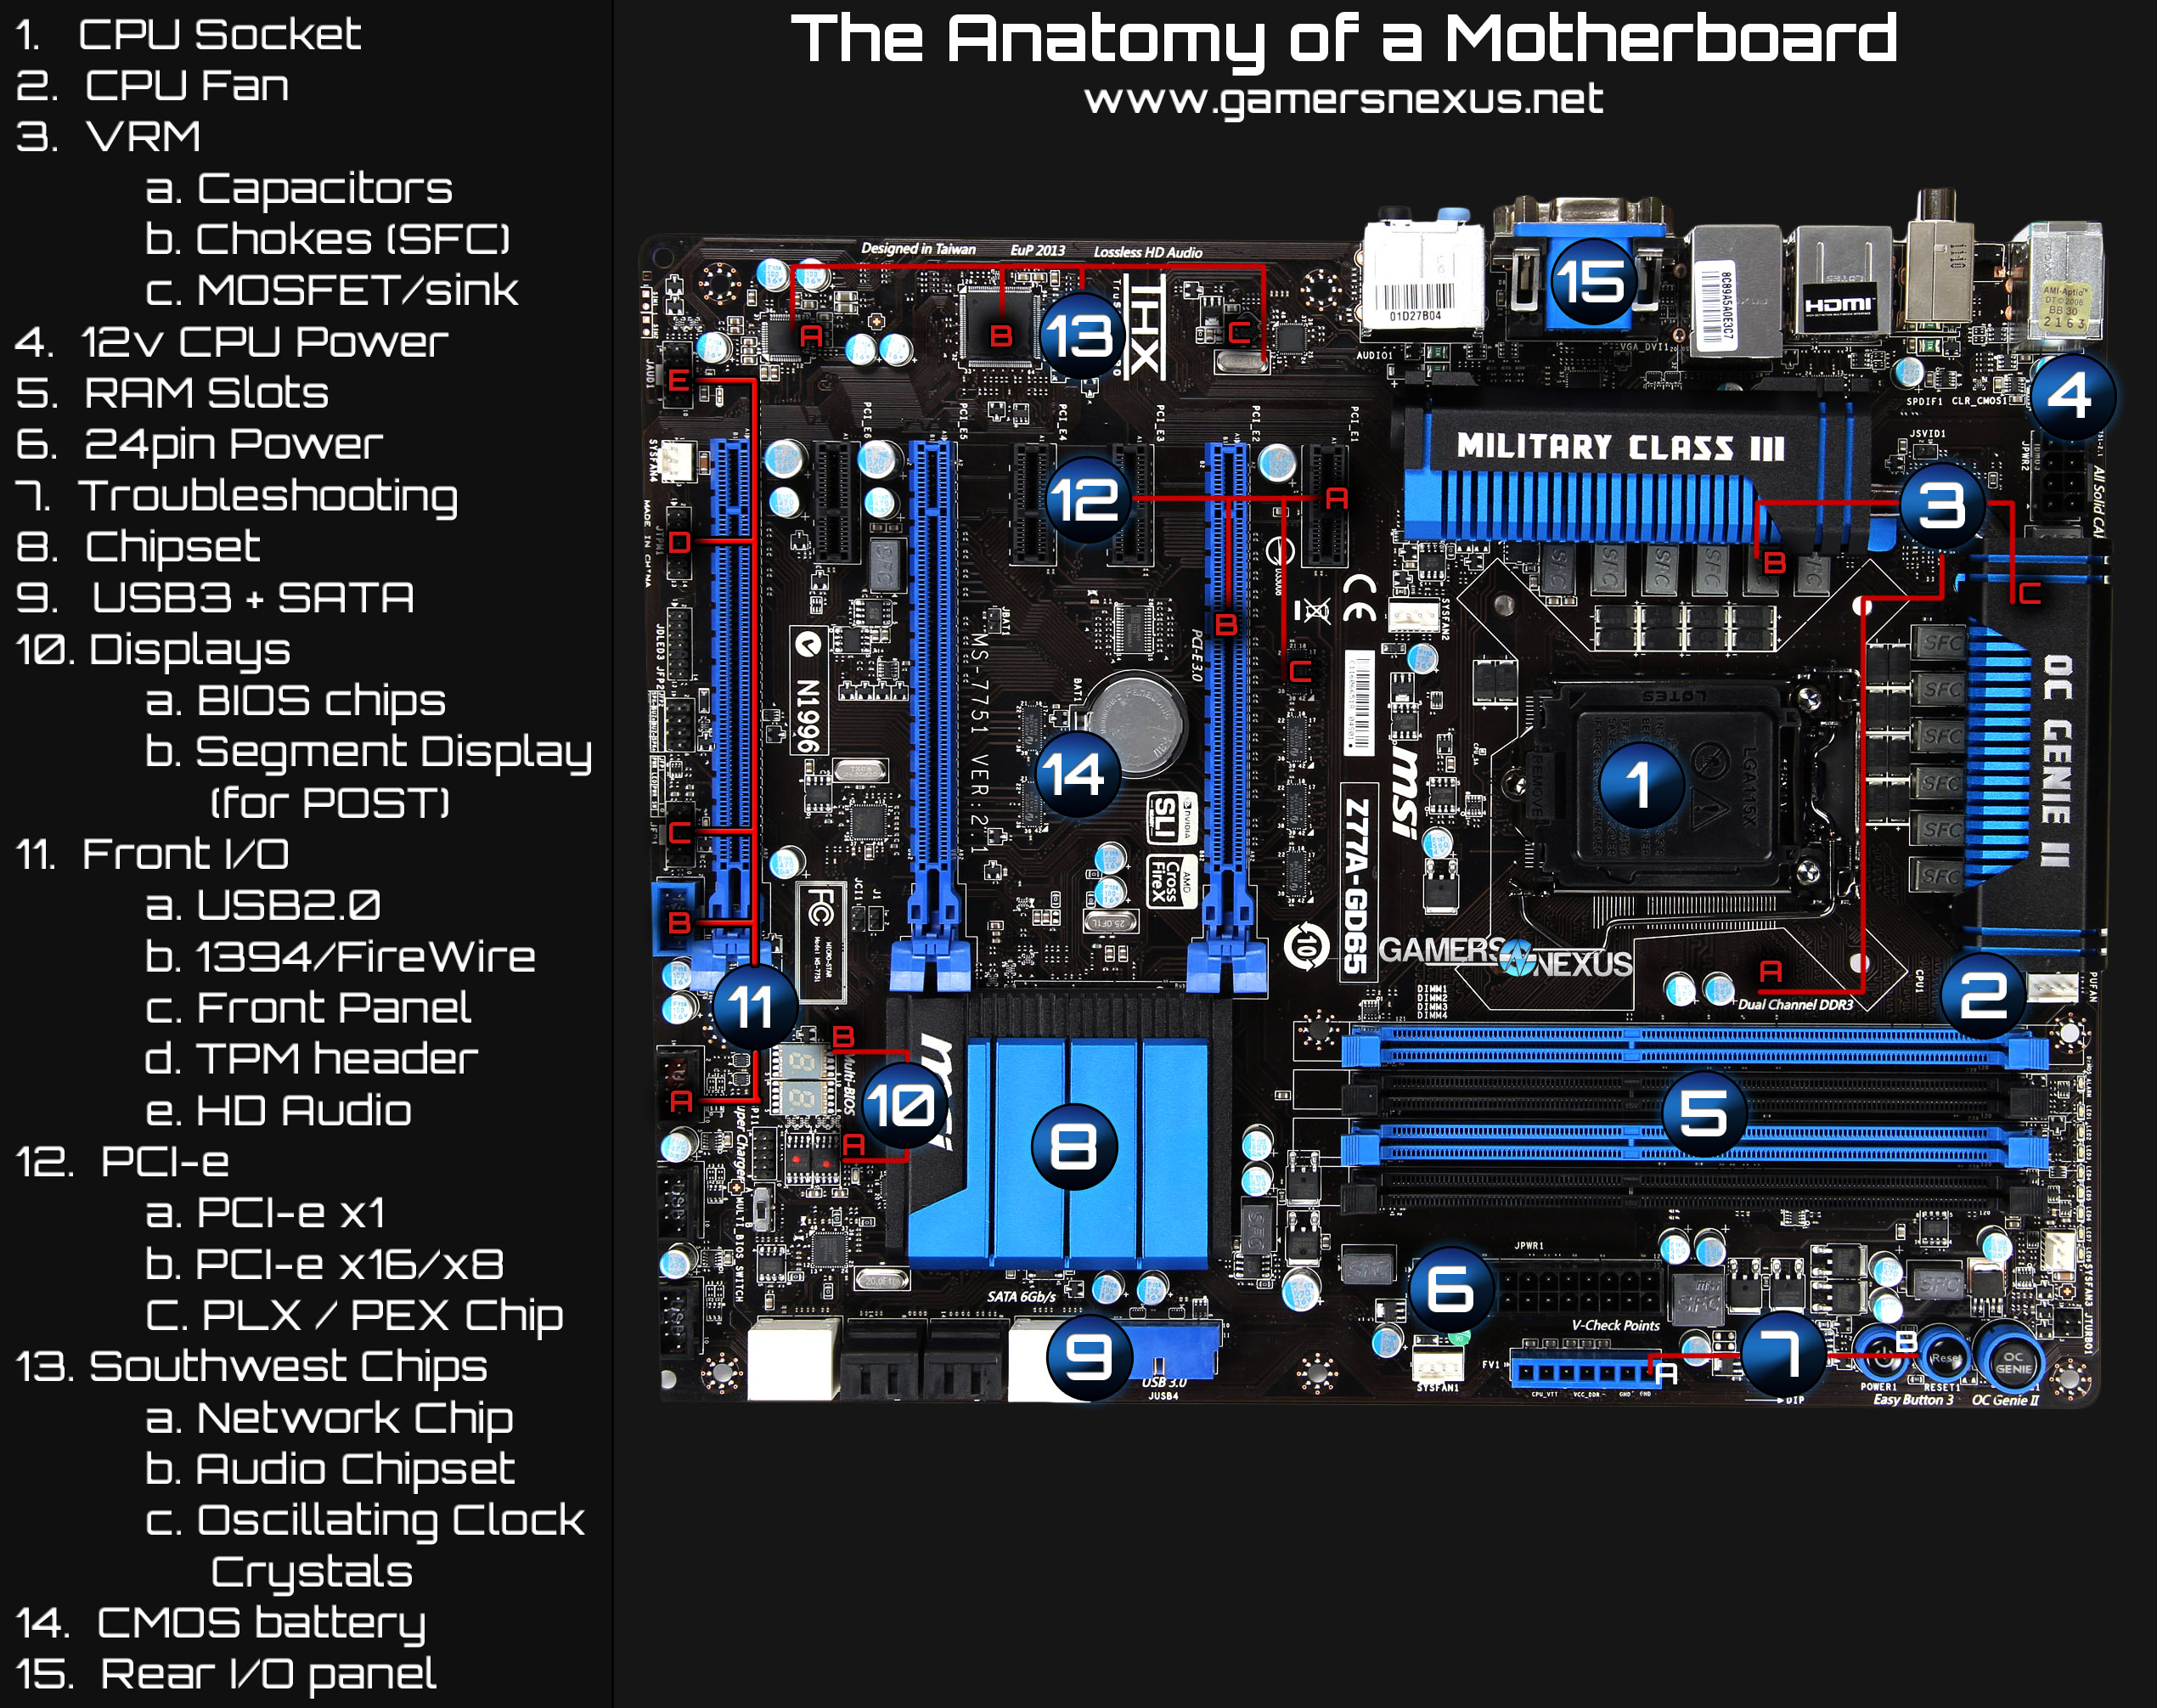 Motherboard Diagram - The Anatomy of a Motherboard